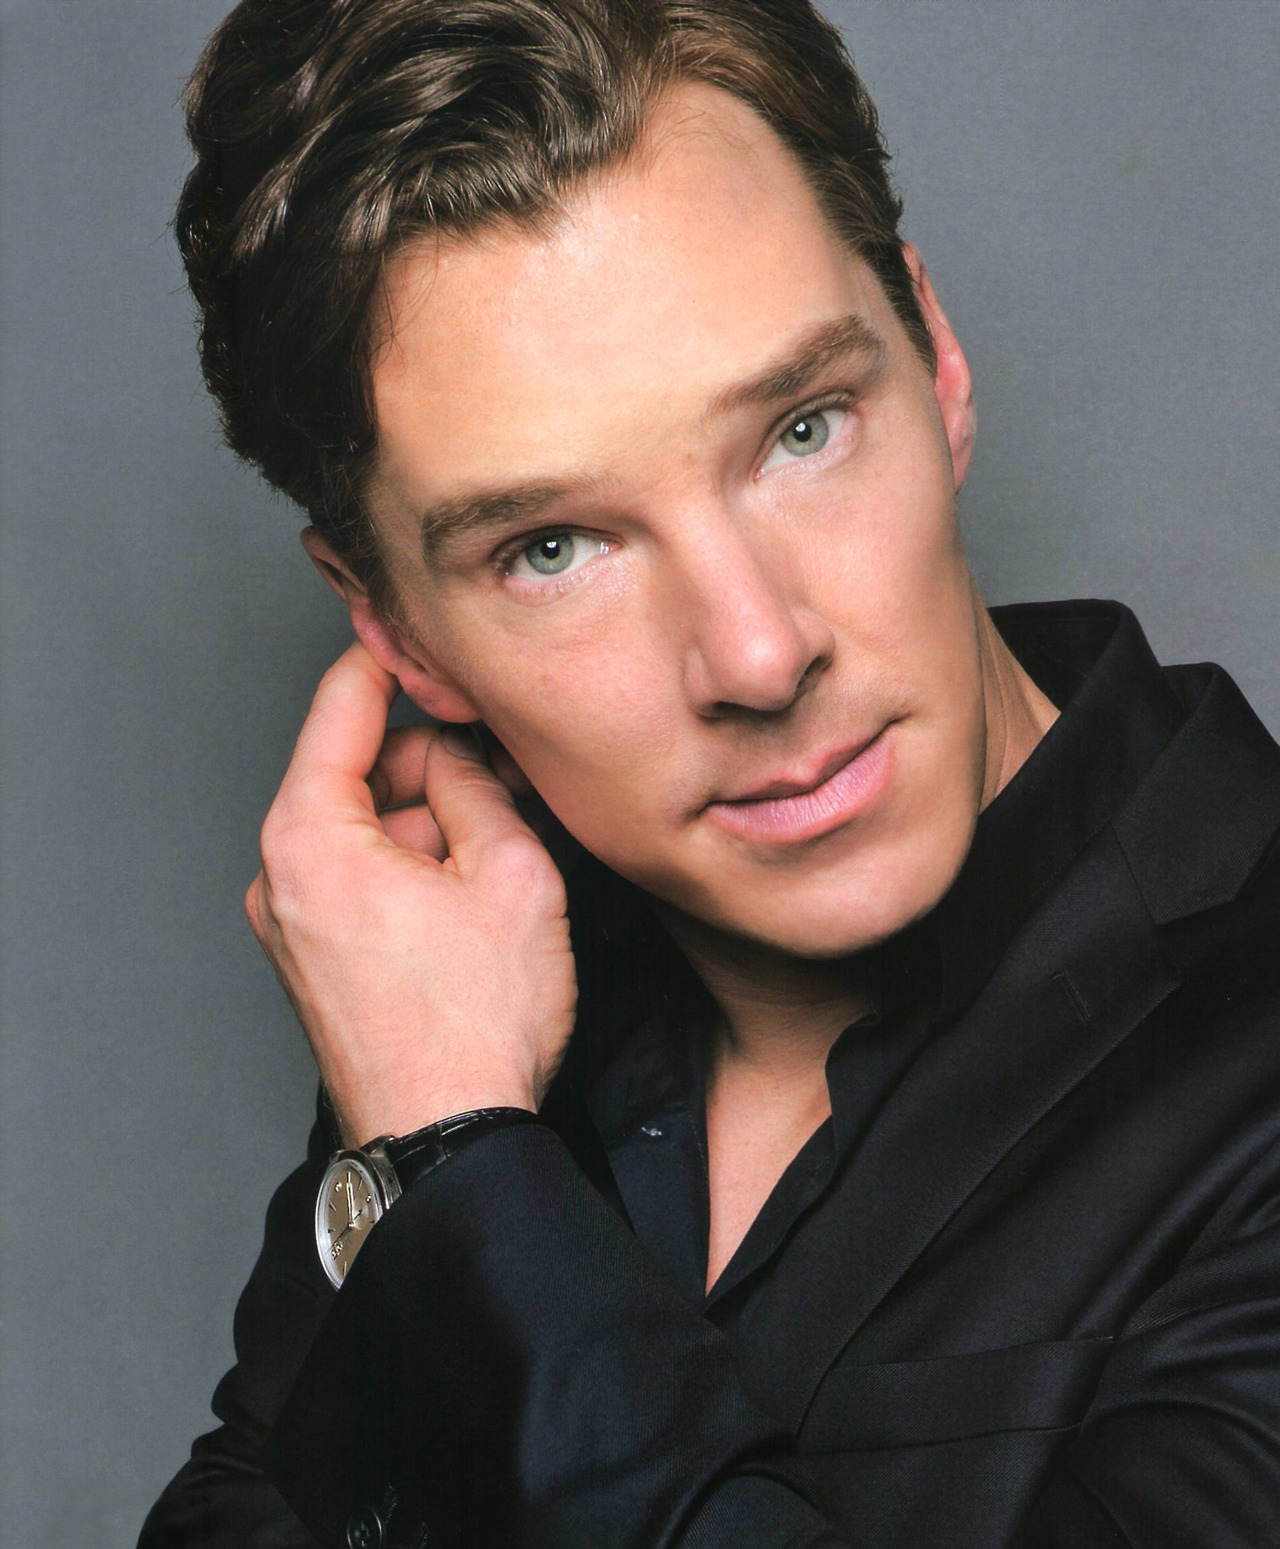 Benedict-in-Screen-Magazine-04-2013-benedict-cumberbatch-33870098-1280-1549[1]